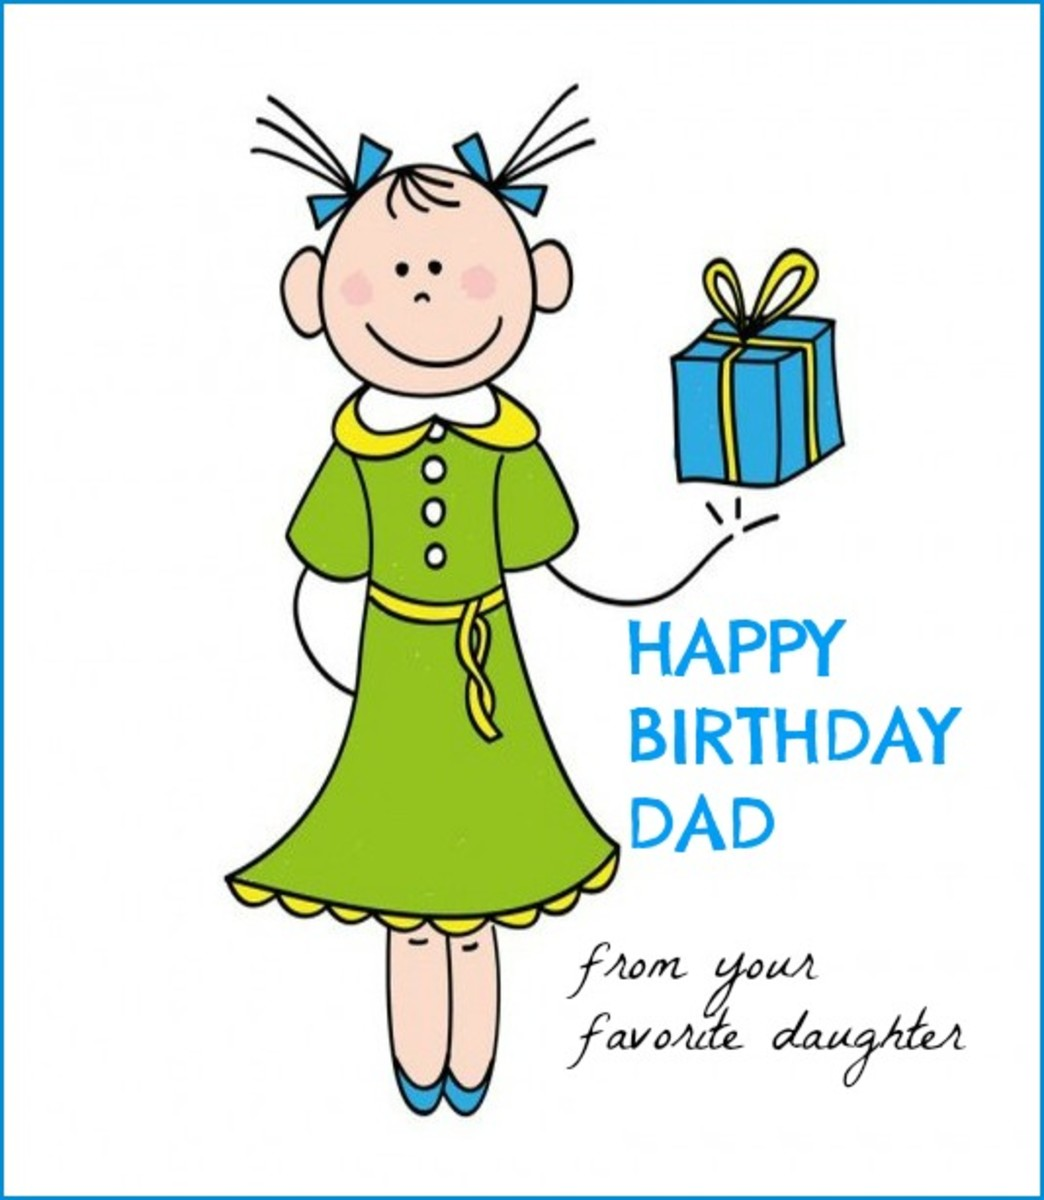 Happy Birthday Card For Dad From Daughter Happy Birthday Bestest